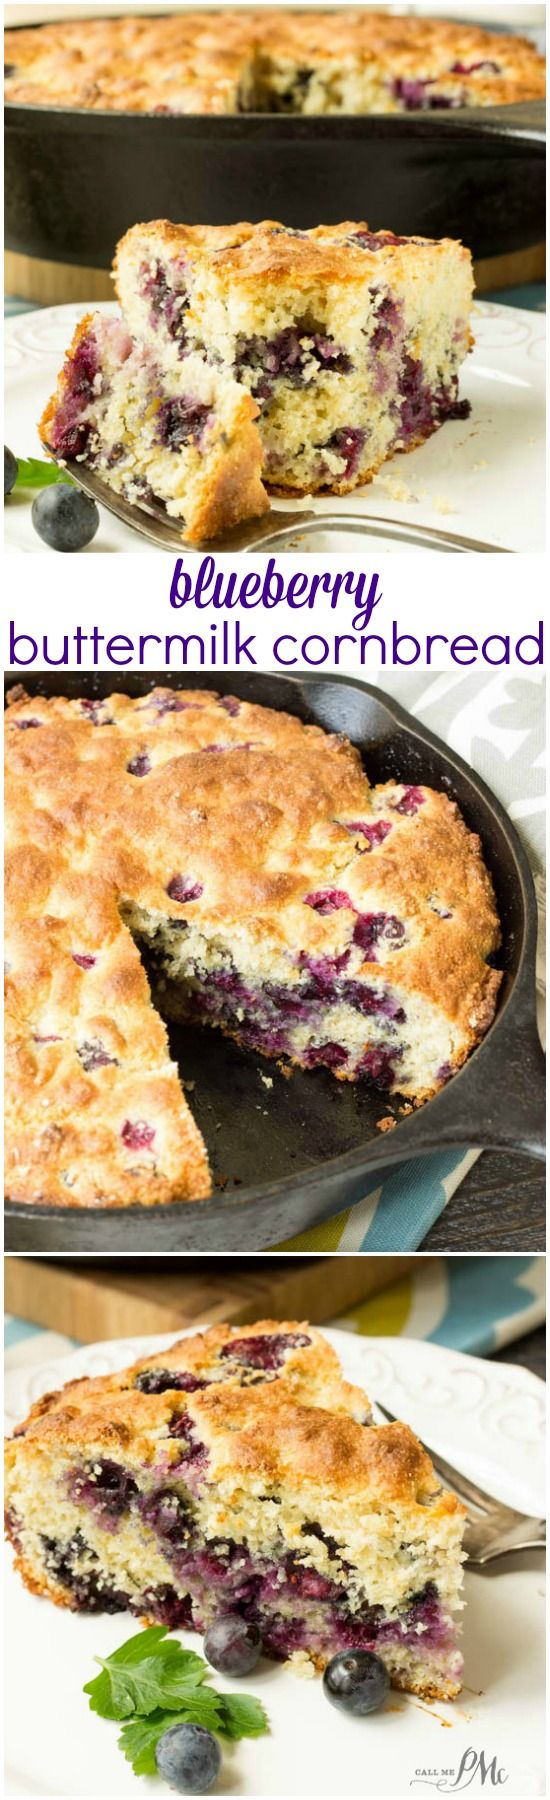 Blueberry Buttermilk Cornbread is loaded with fresh, sweet blueberries. Comfort food at its' best, this homemade cornbread recipe makes a perfect snack, side dish or dessert topped with vanilla ice cream. - Call Me PMc